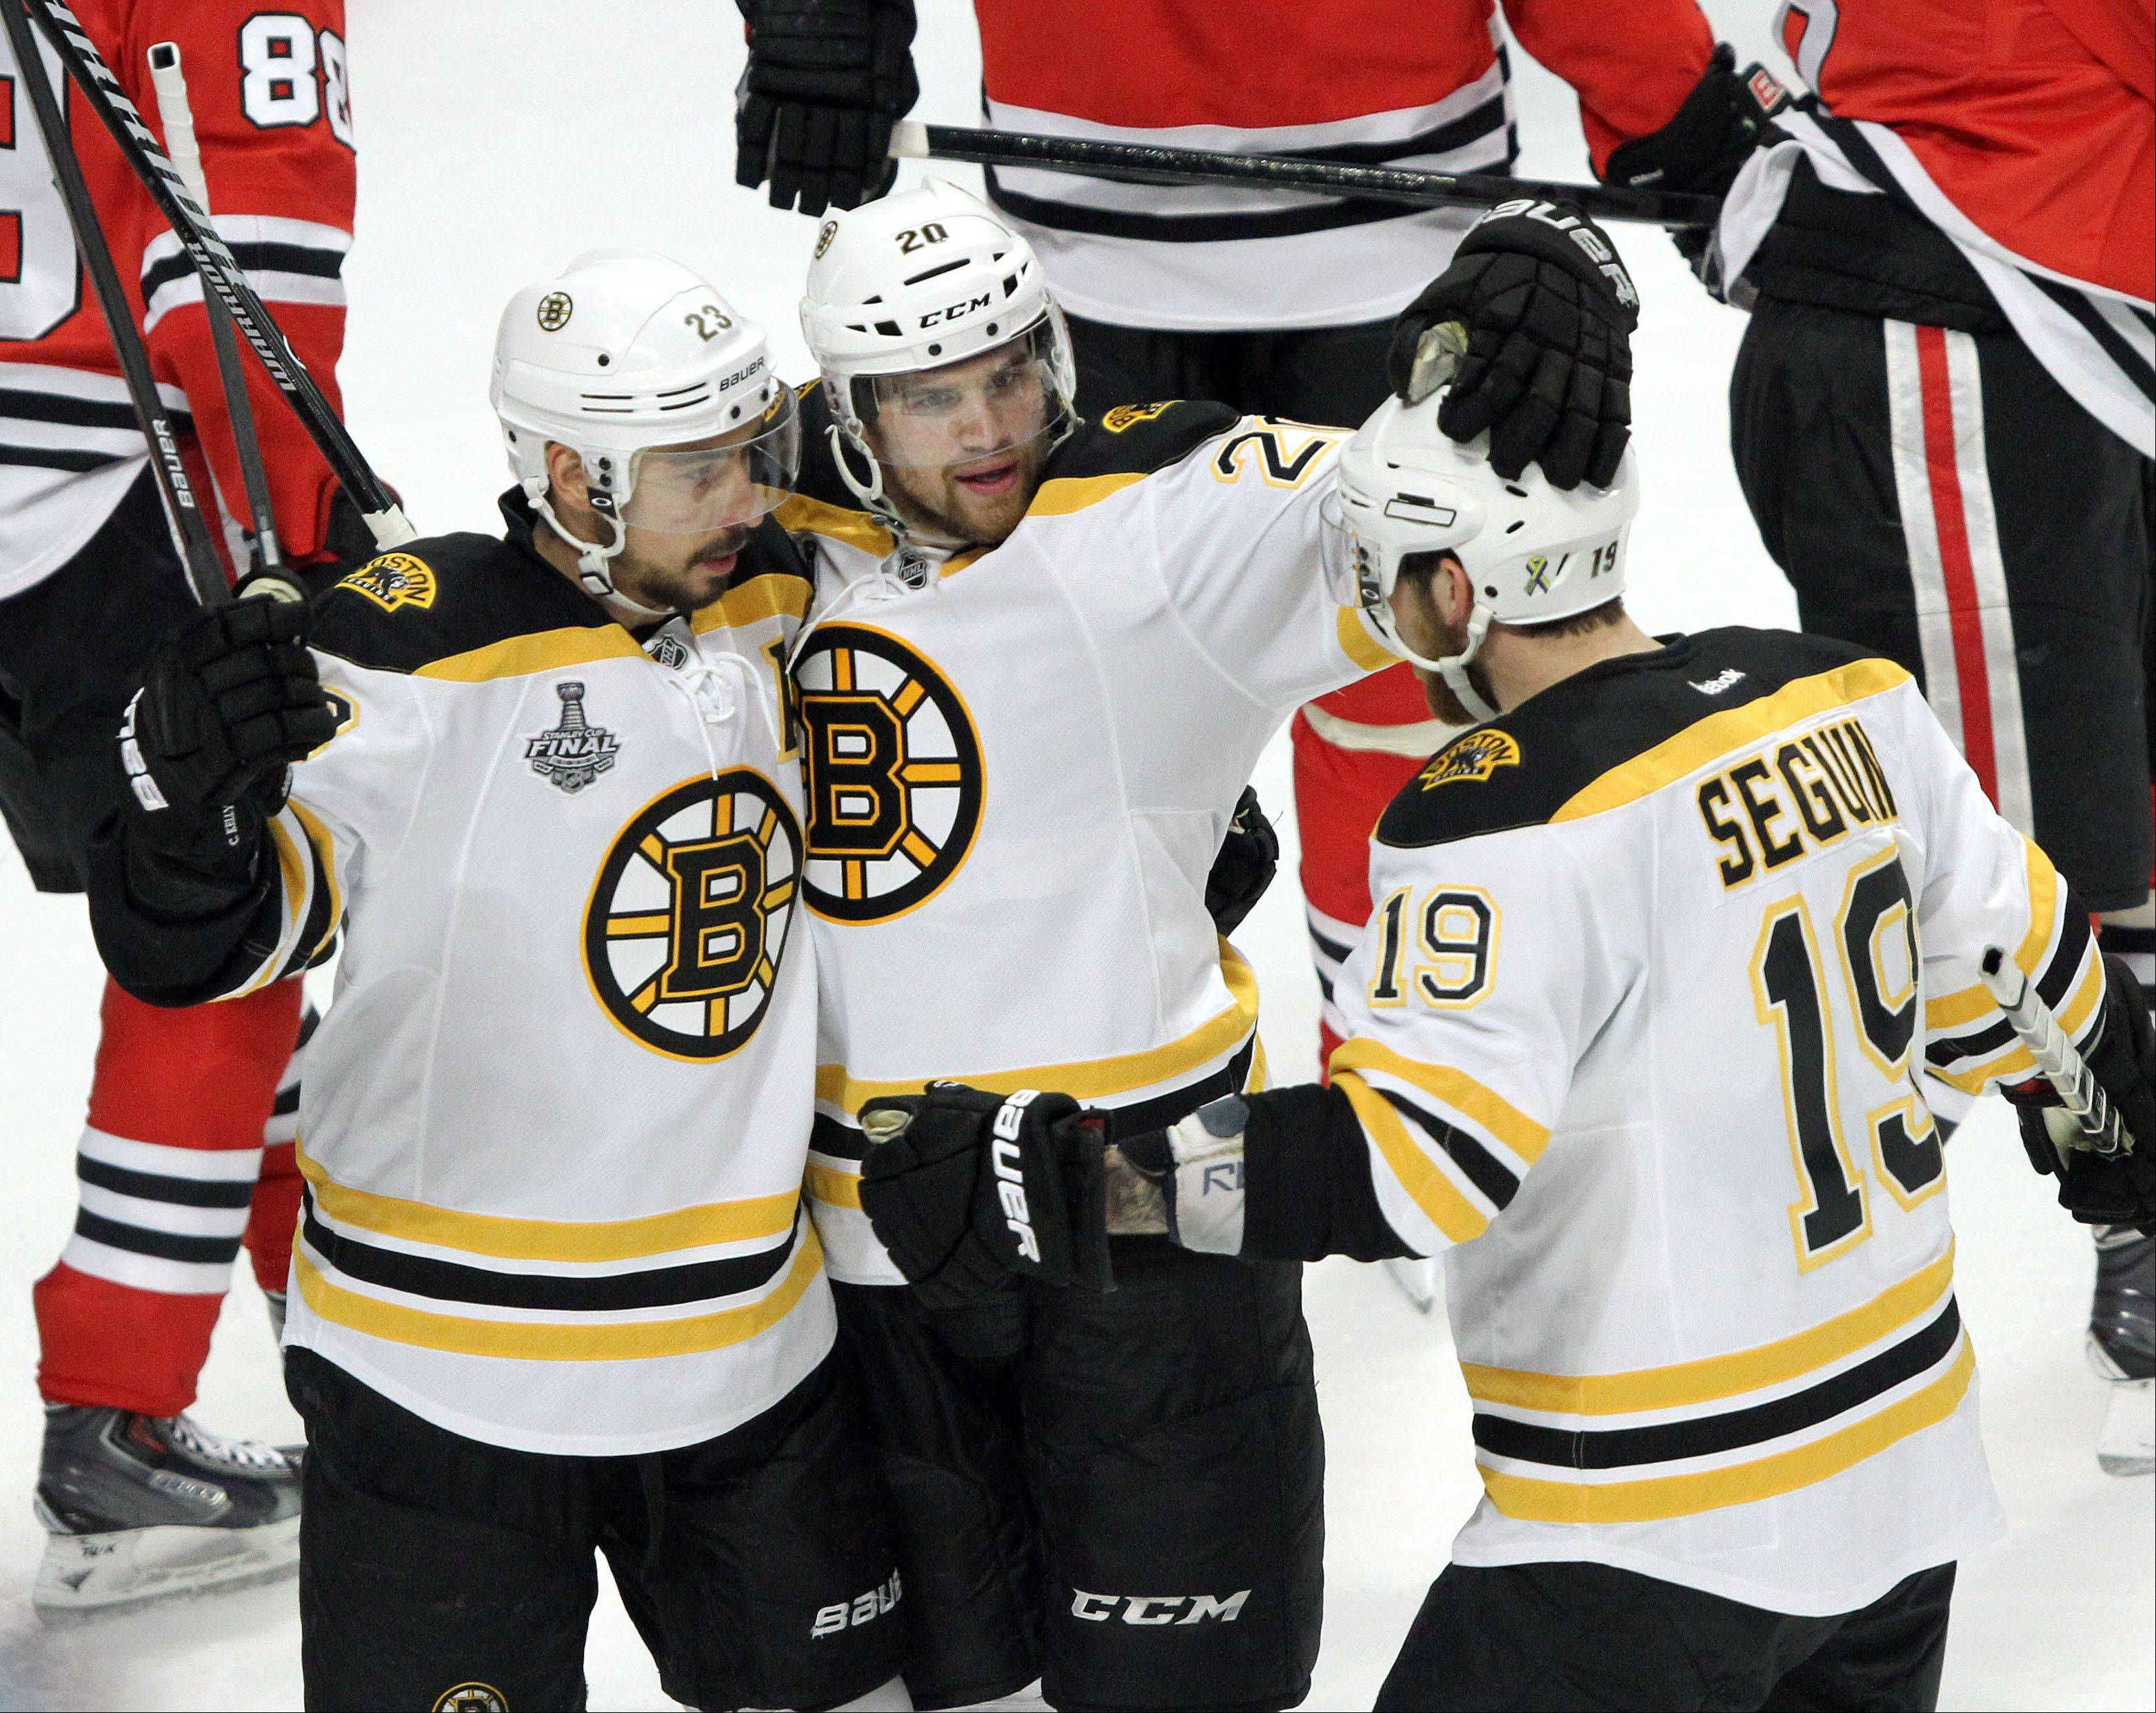 Bruins players celebrate a 2nd period goal during game 2 of the Stanley Cup Finals at the United Center in Chicago Saturday.